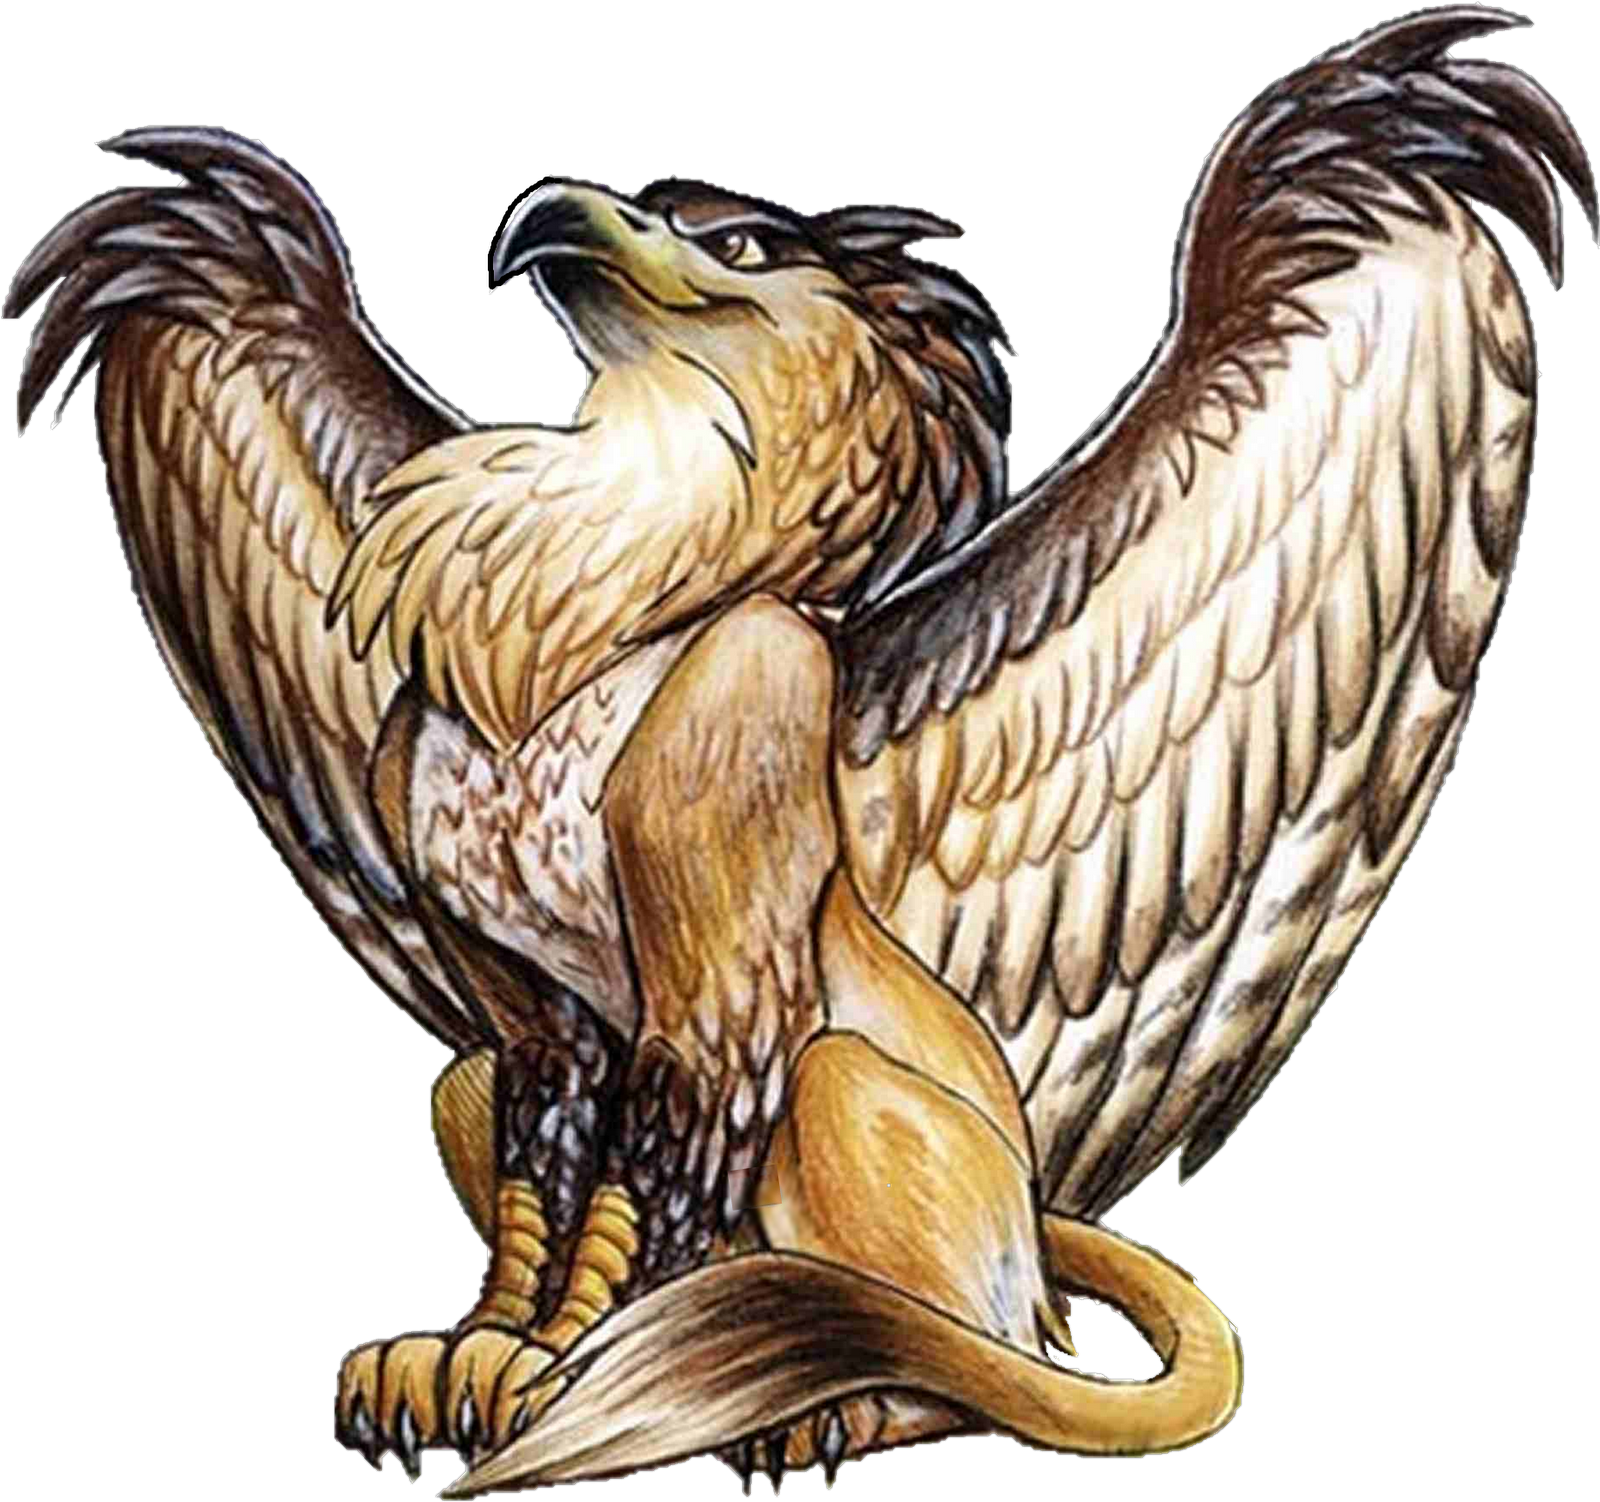 griffin definition - Google Search - Griffin PNG